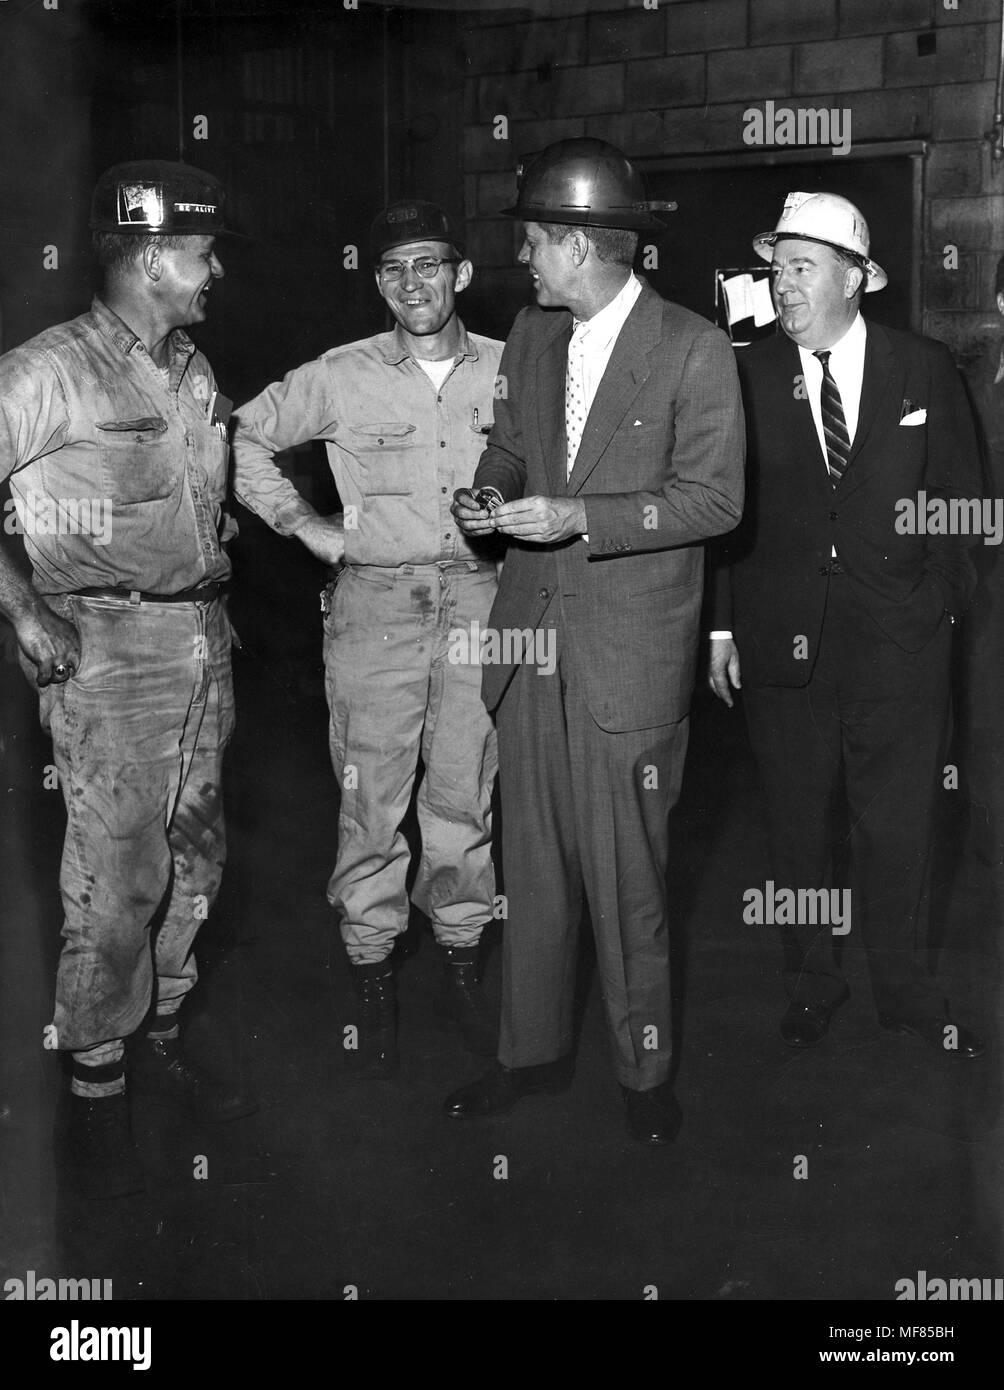 "PC 1788       April 1960 John F. Kennedy, wearing hard hat, talks with miners in West Virginia during the Presidential Primary campaign.  Please credit ""John F. Kennedy Presidential Library and Museum, Boston"" Stock Photo"